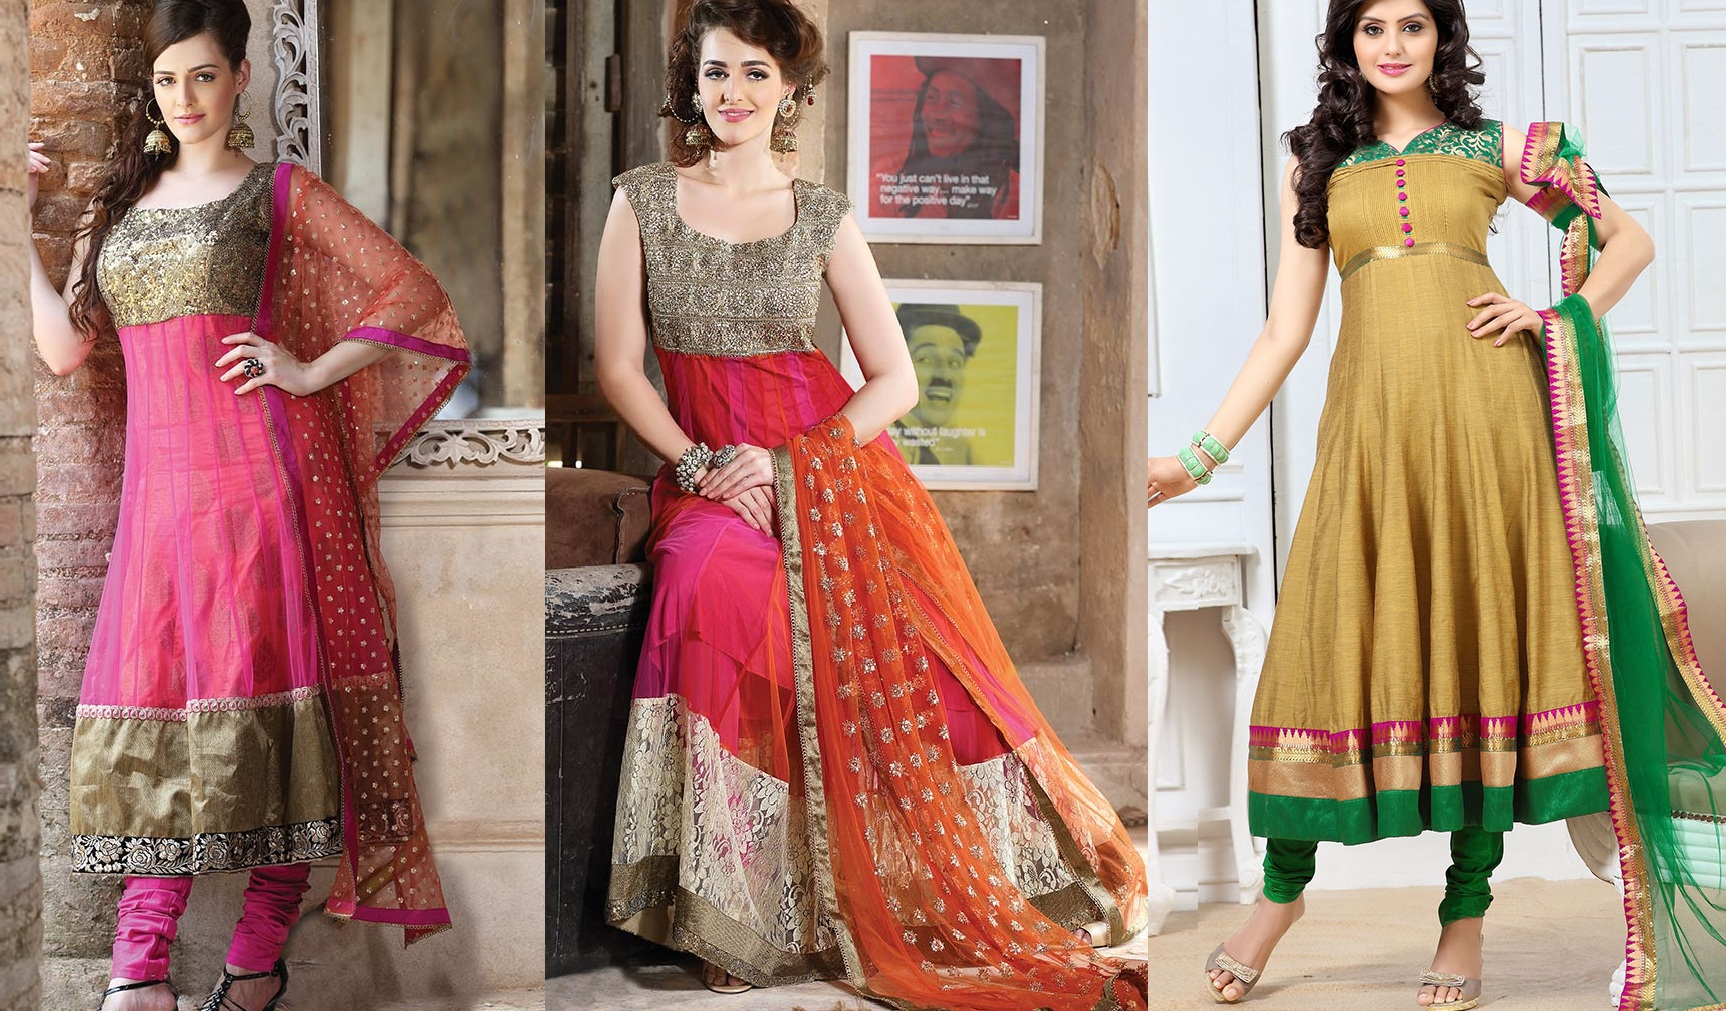 New dress collection for diwali for women - Welcome To Darpan Make Over Designer Boutique